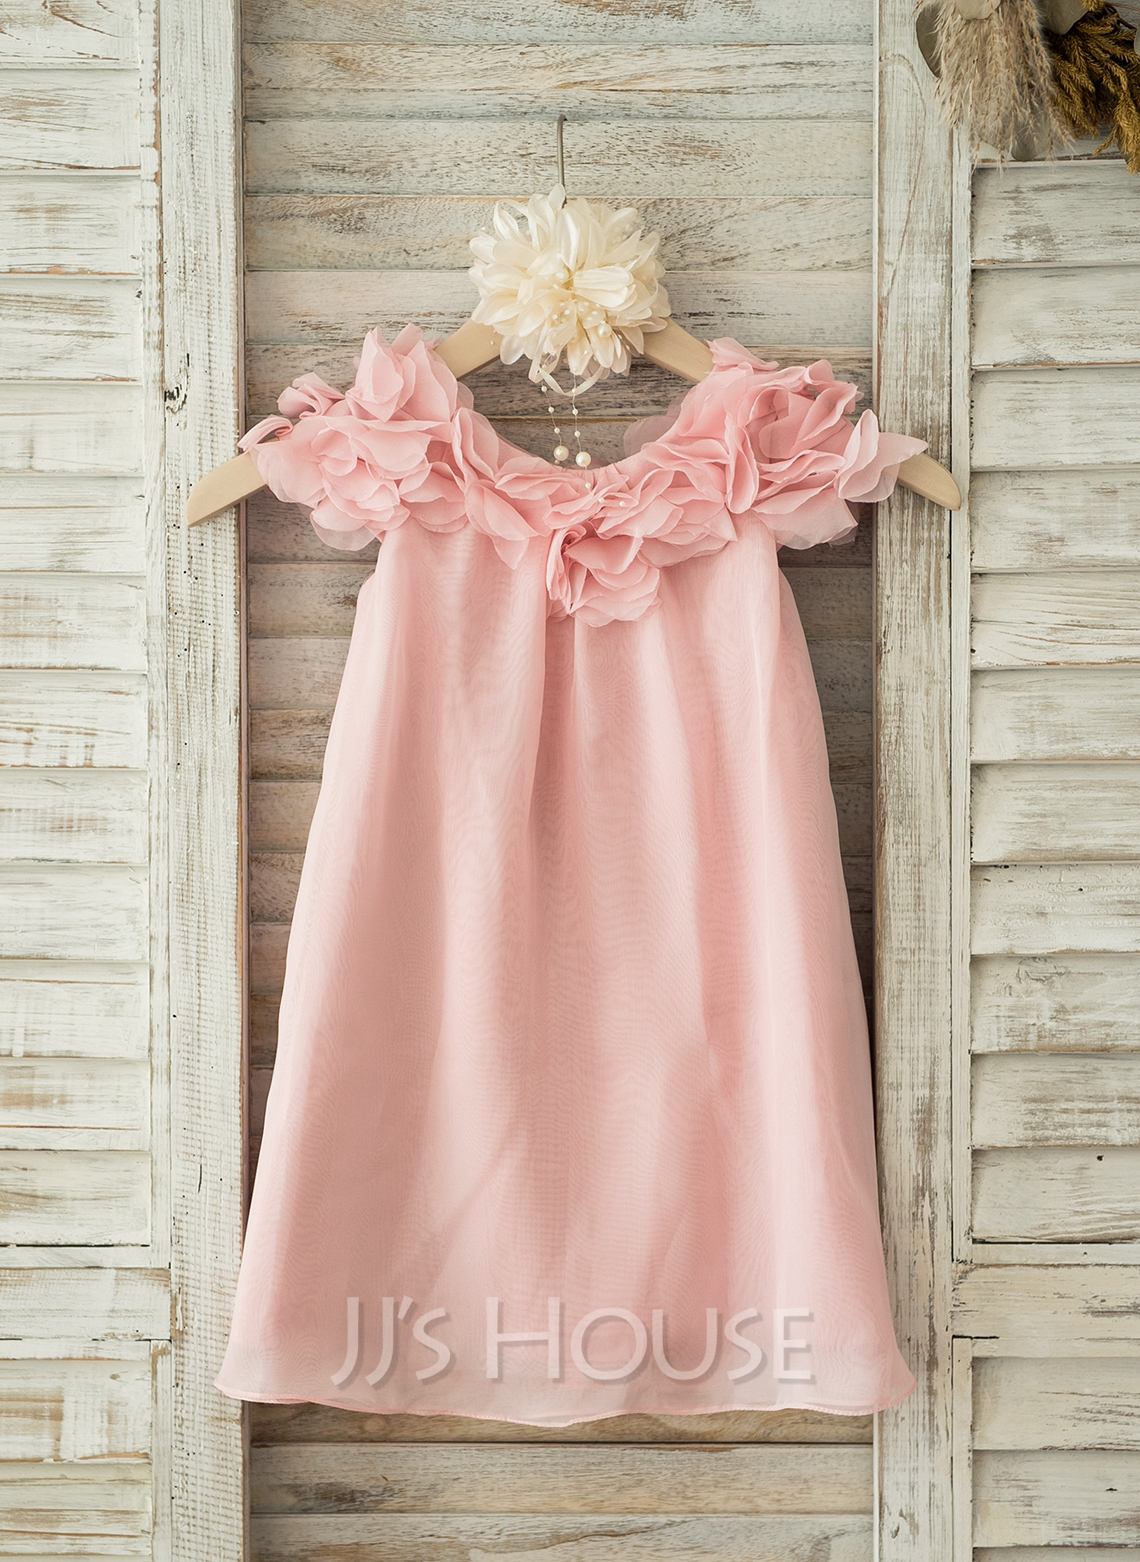 A-Line/Princess Knee-length Flower Girl Dress - Chiffon Short Sleeves Scoop Neck With Flower(s)